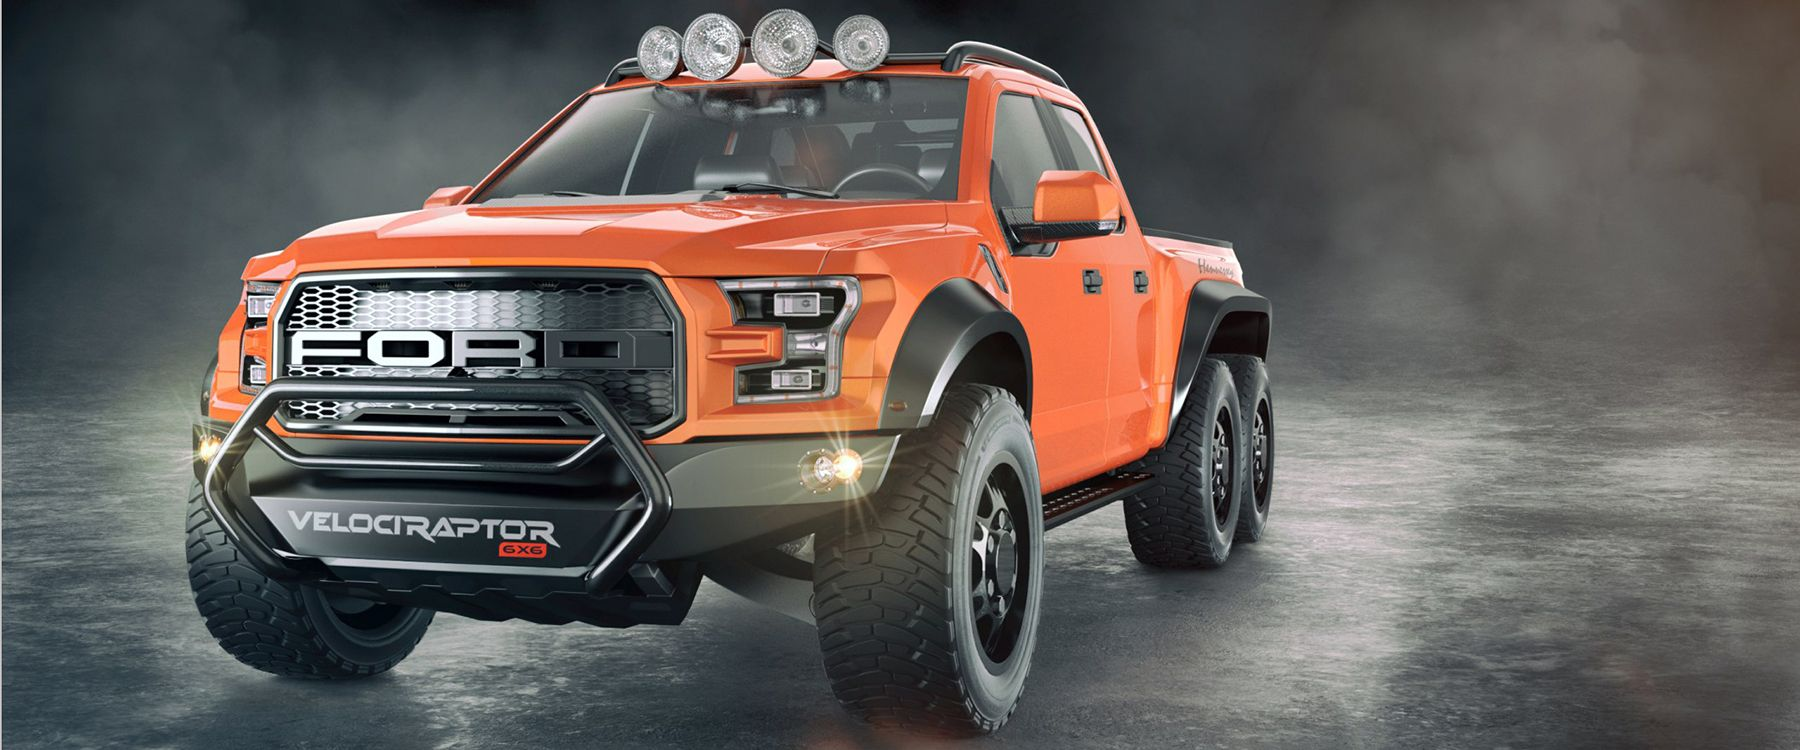 ford hennessey velociraptor 6x6 six wheels and 650 hp men and manly goods 6x6 truck ford. Black Bedroom Furniture Sets. Home Design Ideas